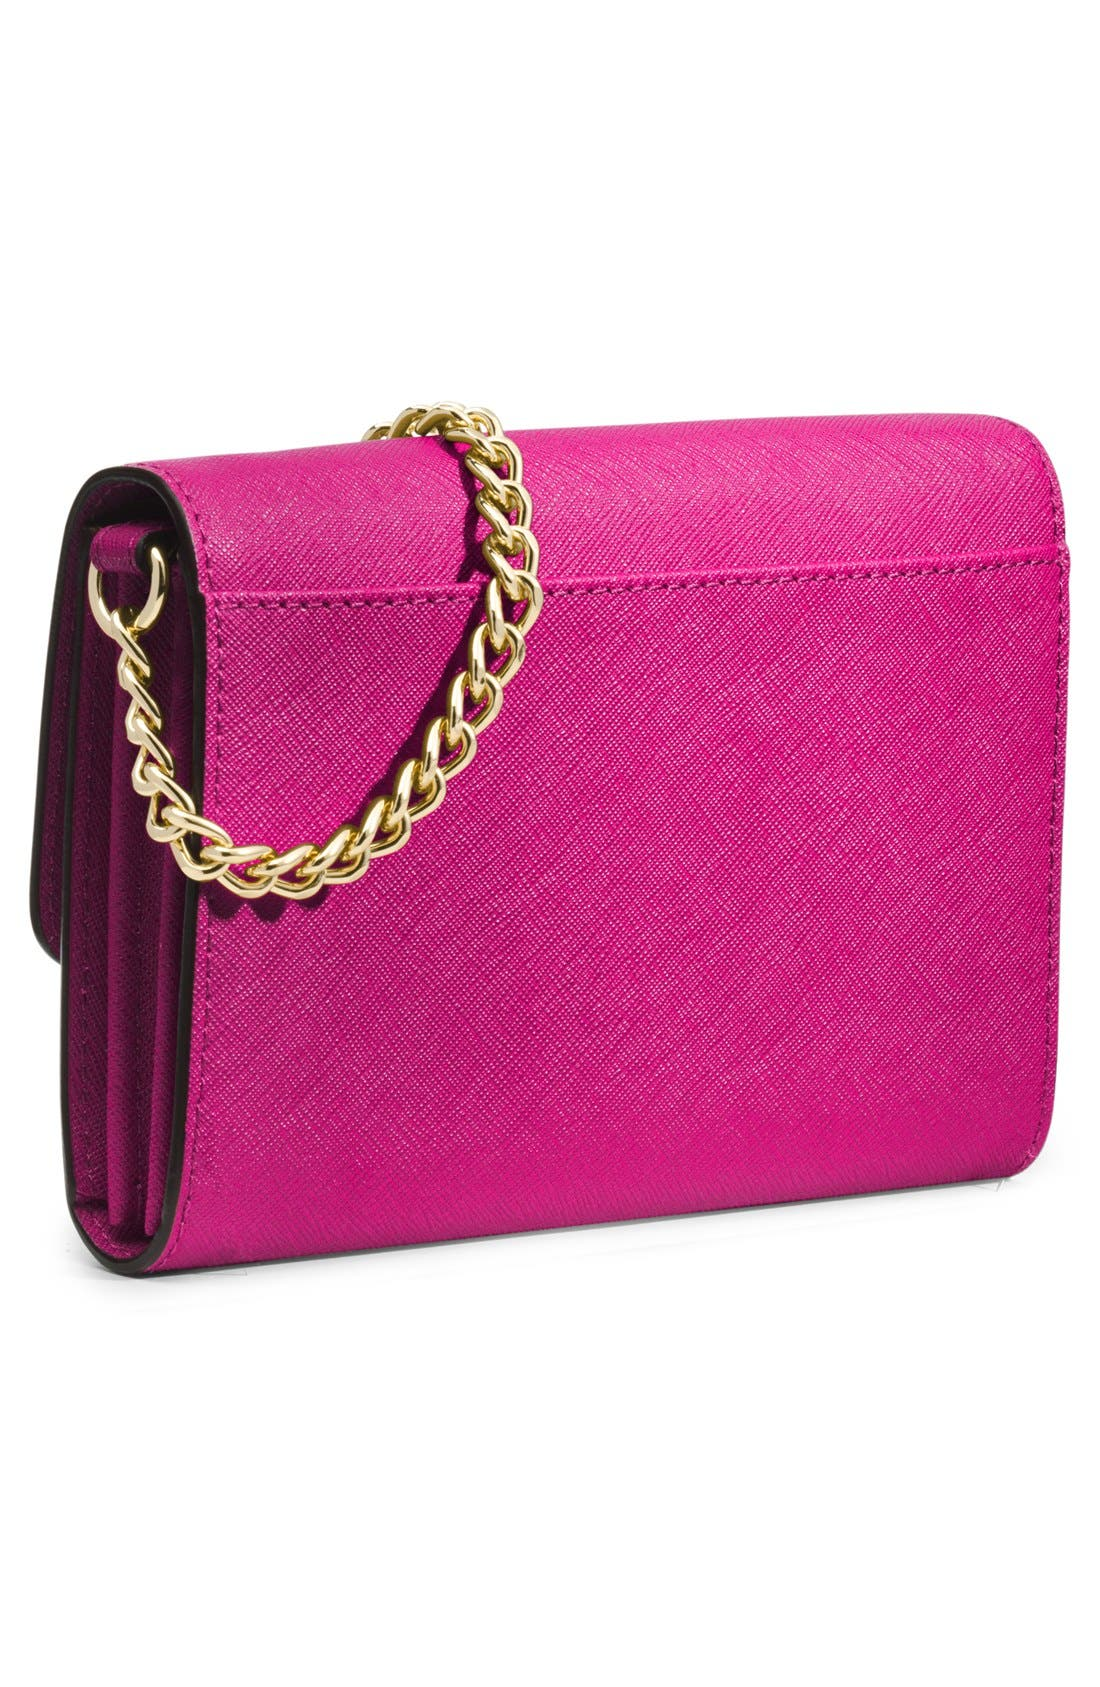 'Jet Set - Large Phone' Saffiano Leather Crossbody Bag,                             Alternate thumbnail 3, color,                             Raspberry